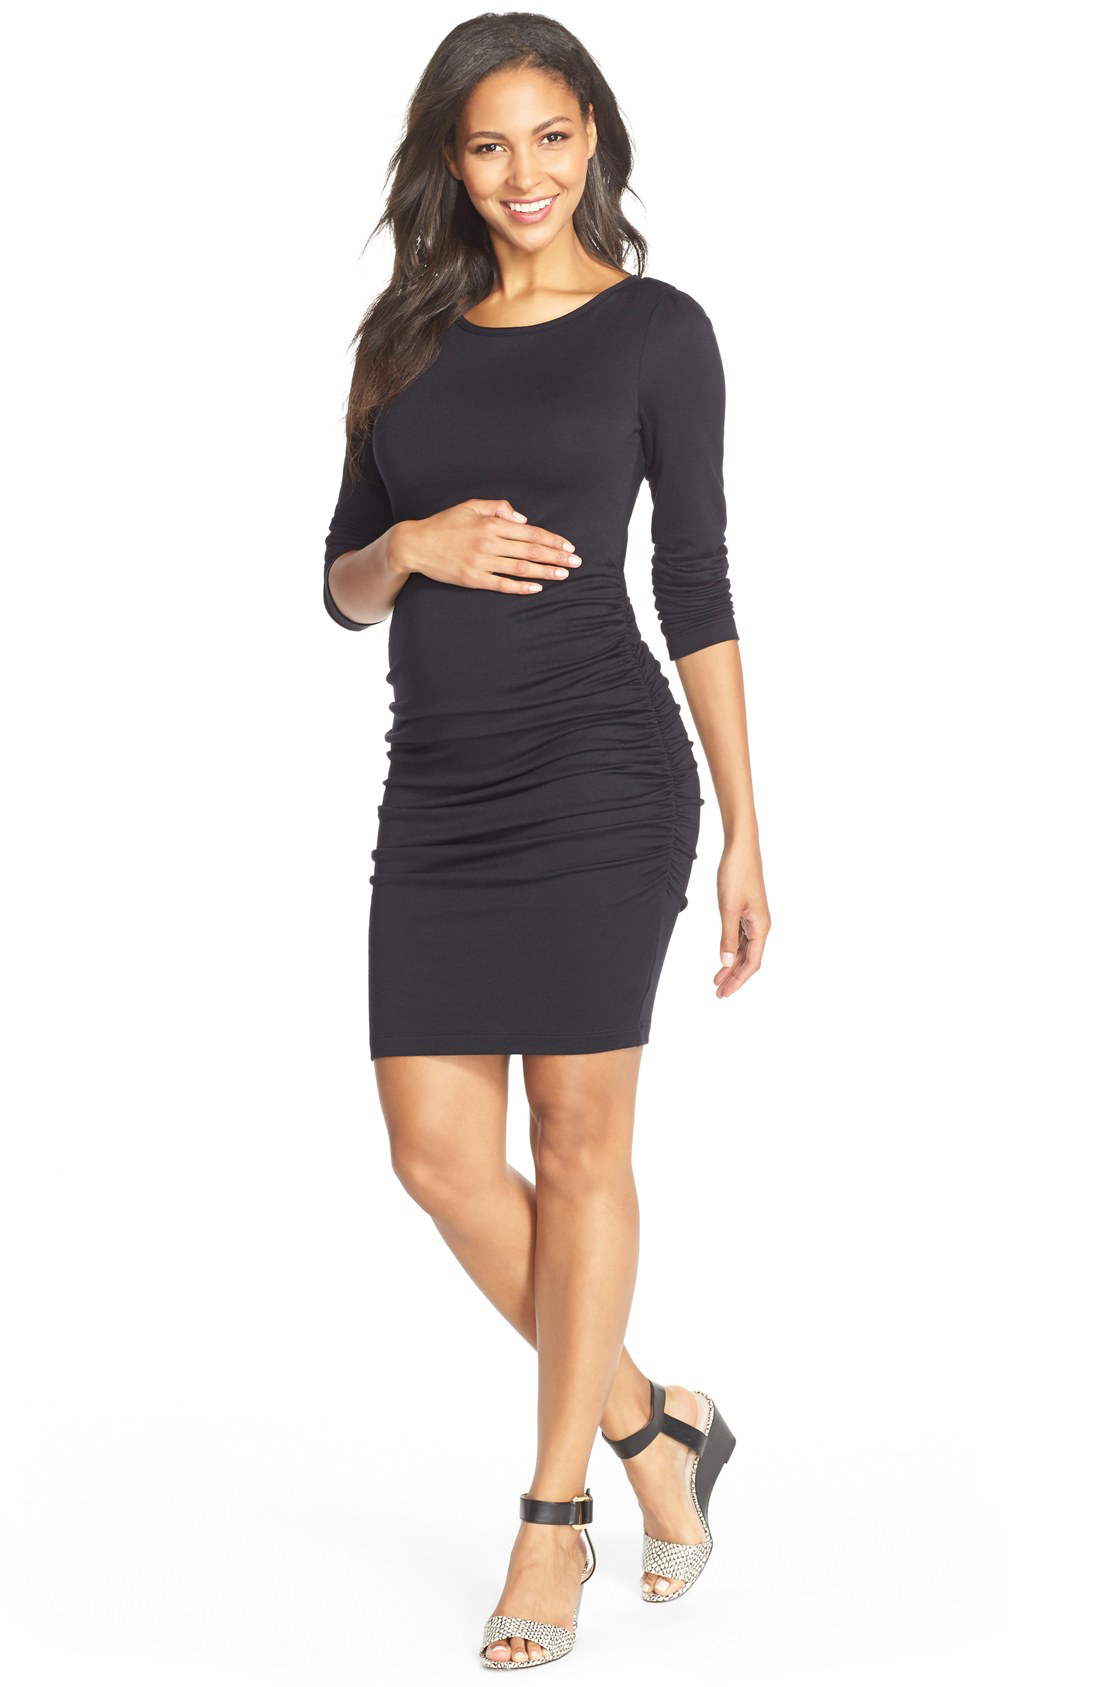 Black Maternity Dress Your Shoe Choice Of Course Is Also A Pivotal Part Outfit But Make Sure You Find Pair Shoes That Put In Ease And